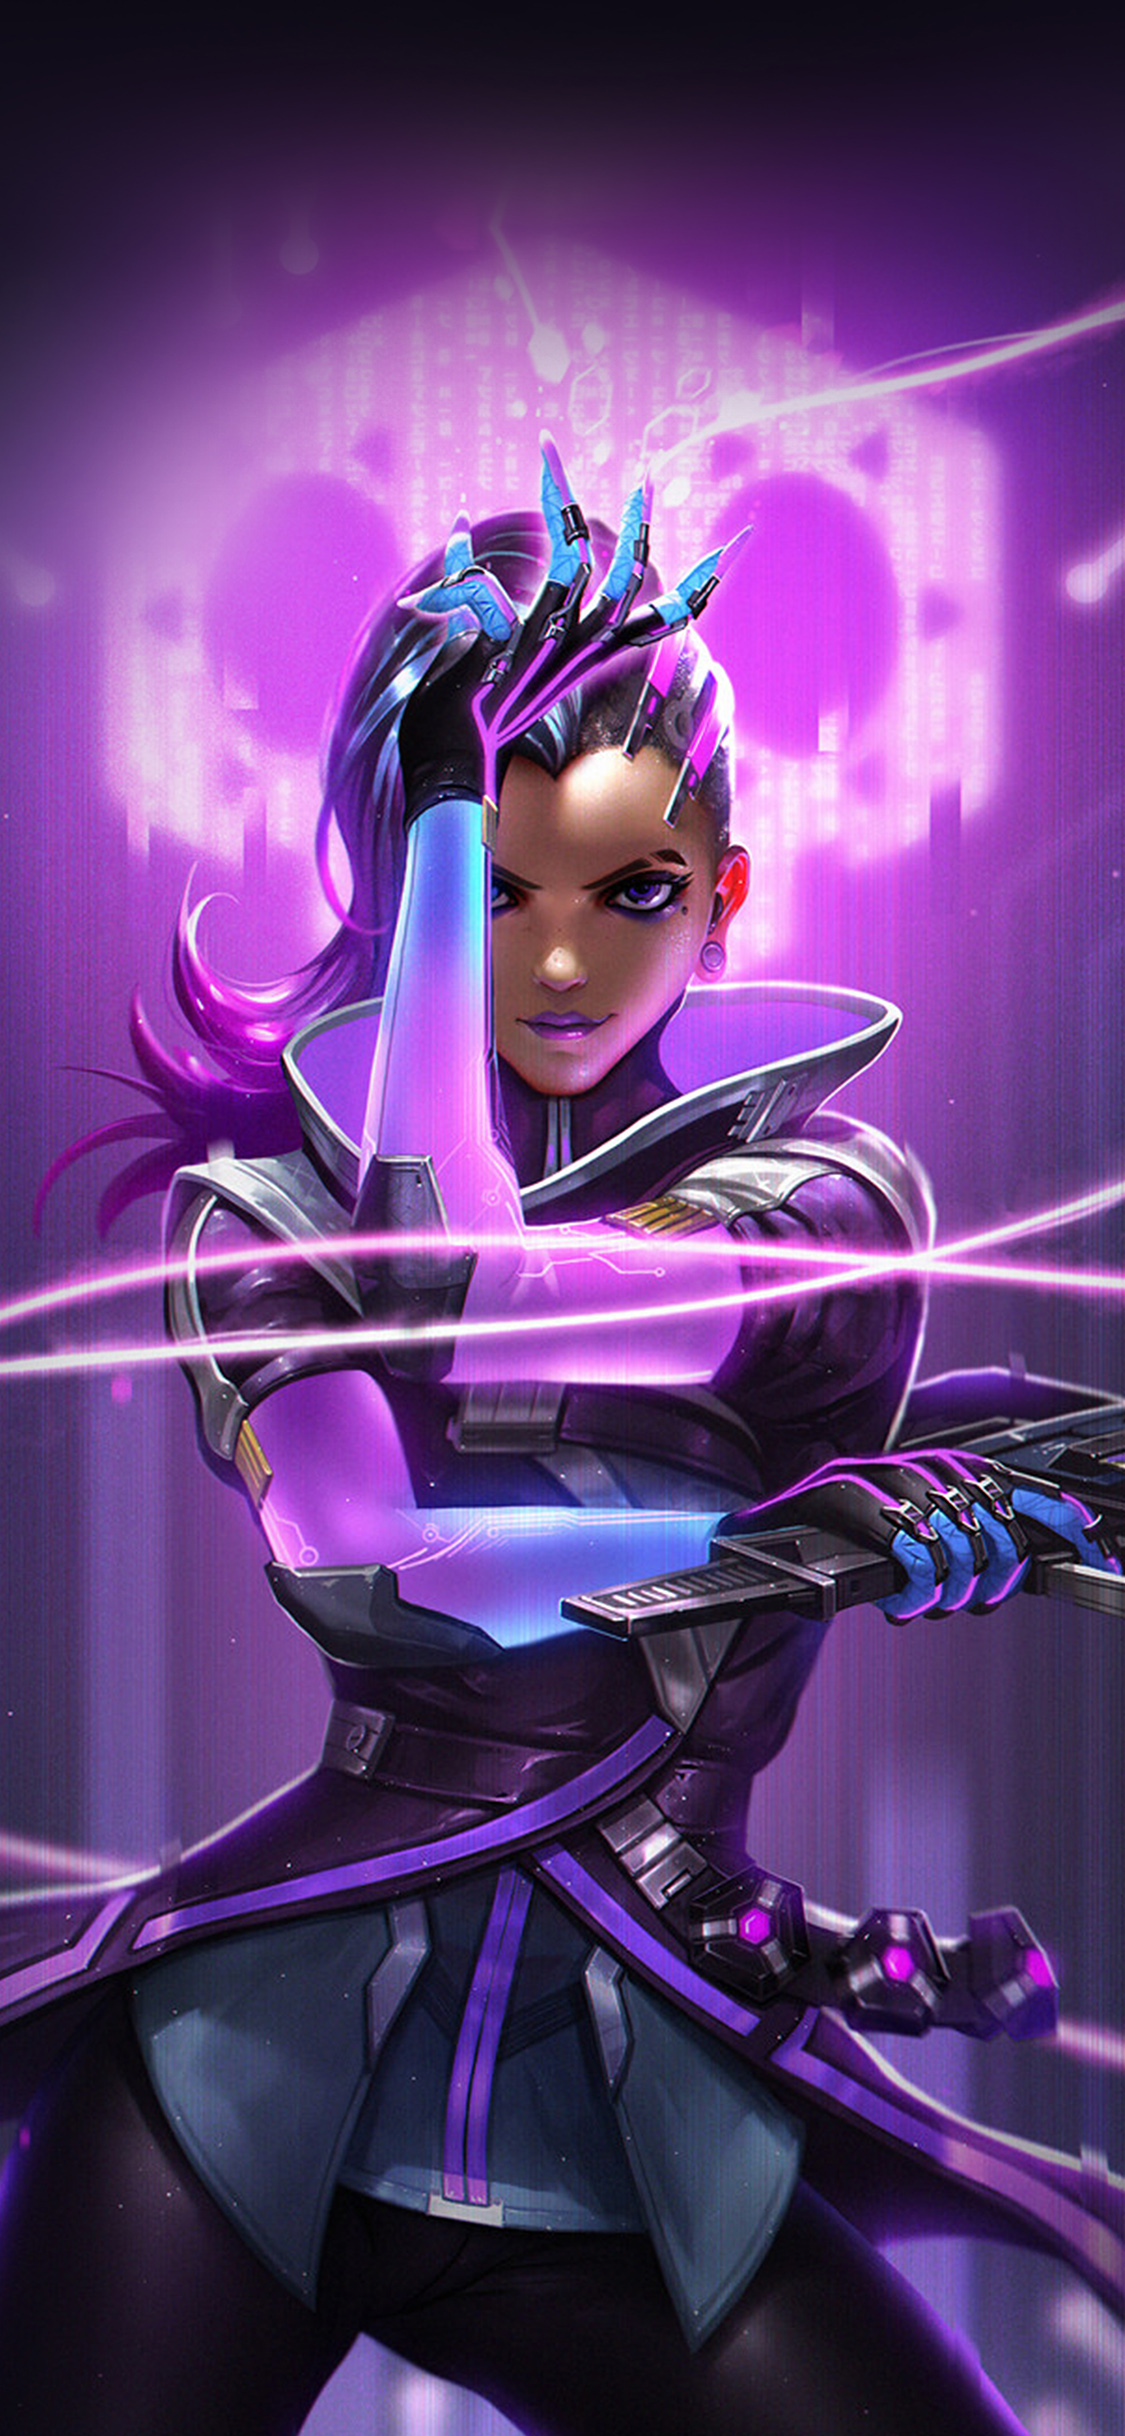 iPhoneXpapers.com-Apple-iPhone-wallpaper-aw56-liang-xing-overwatch-sombra-purple-game-hero-illustration-art